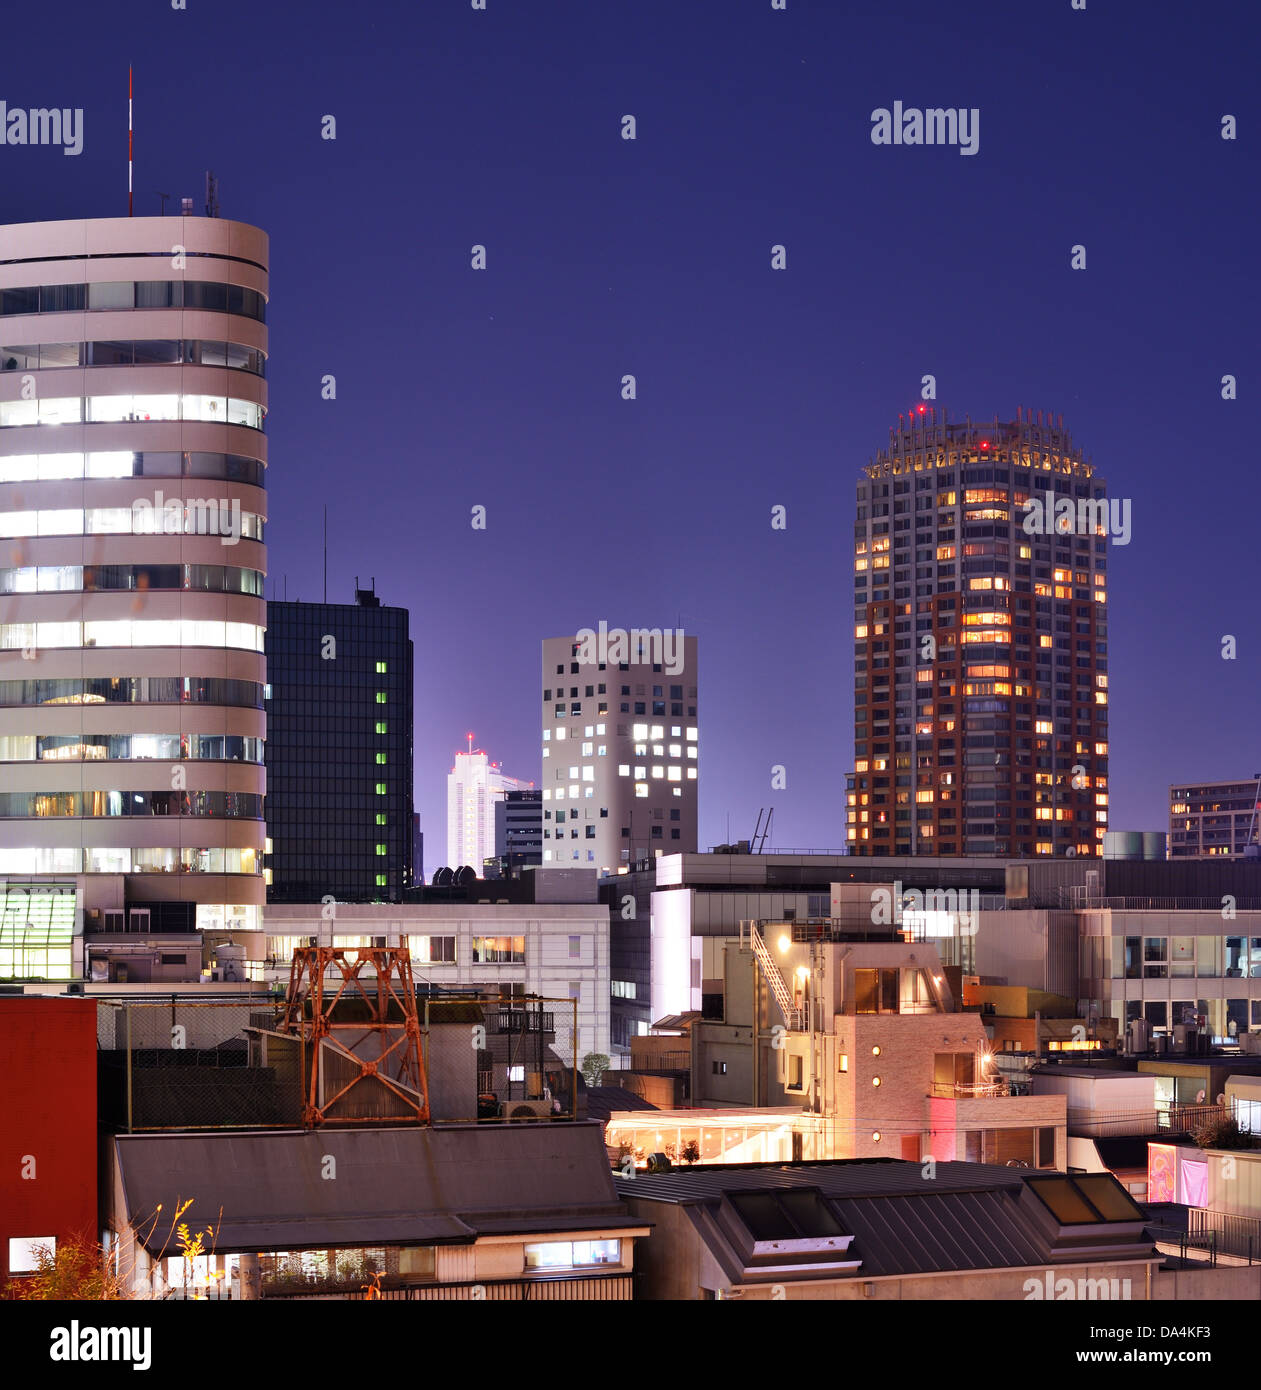 Cityscape in Ebisu district of Tokyo, Japan at night. - Stock Image